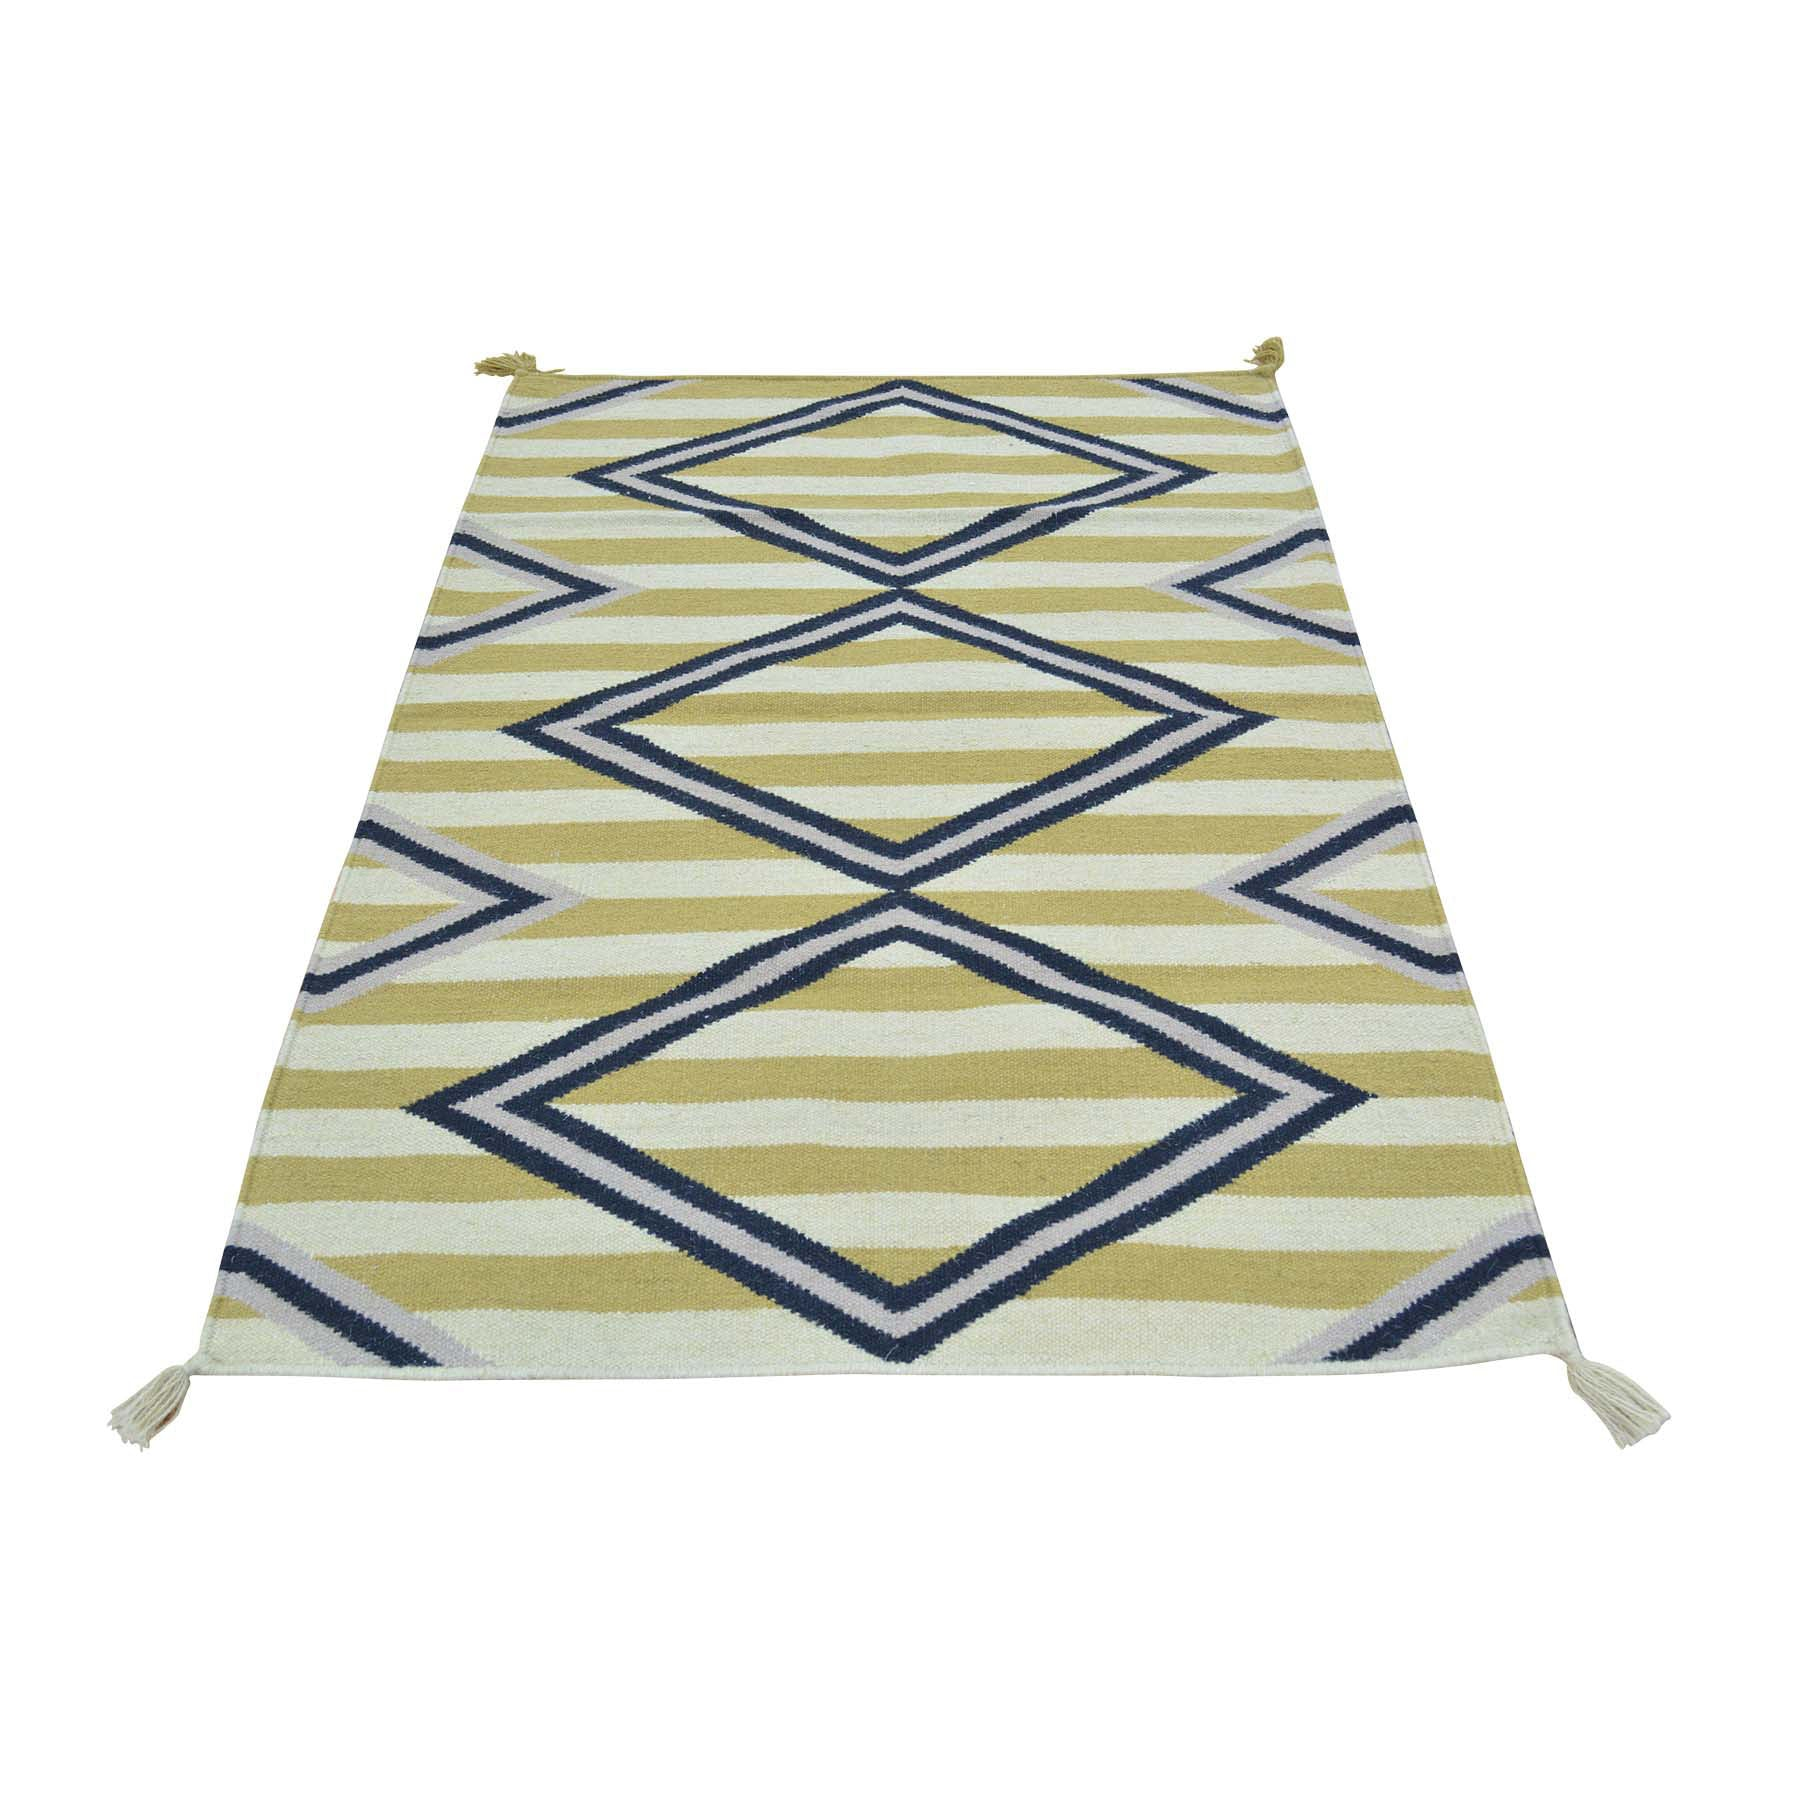 "Handmade Flat Weave Rectangle Rug > Design# SH29968 > Size: 3'-2"" x 5'-0"" [ONLINE ONLY]"